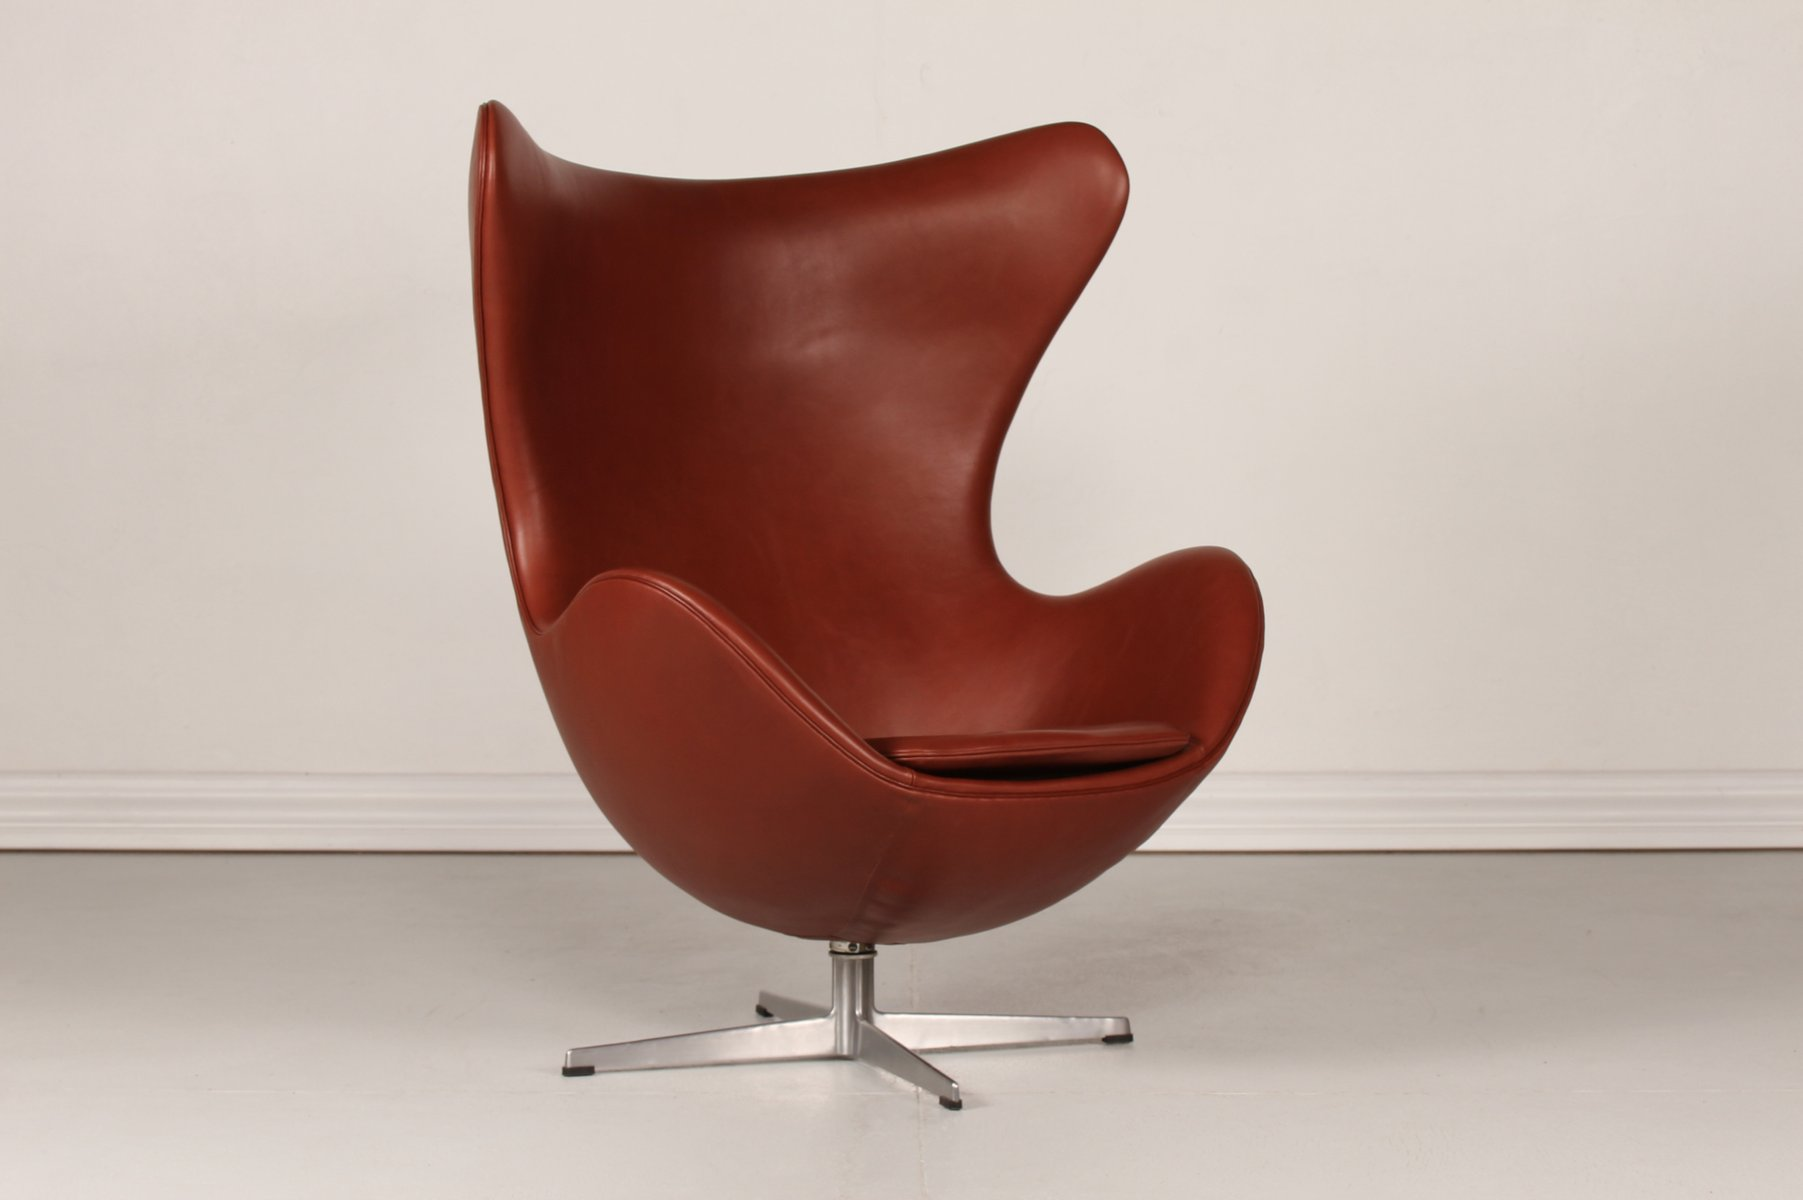 Egg Chair Jacobsen Cognac Leather 3316 Egg Chair By Arne Jacobsen For Fritz